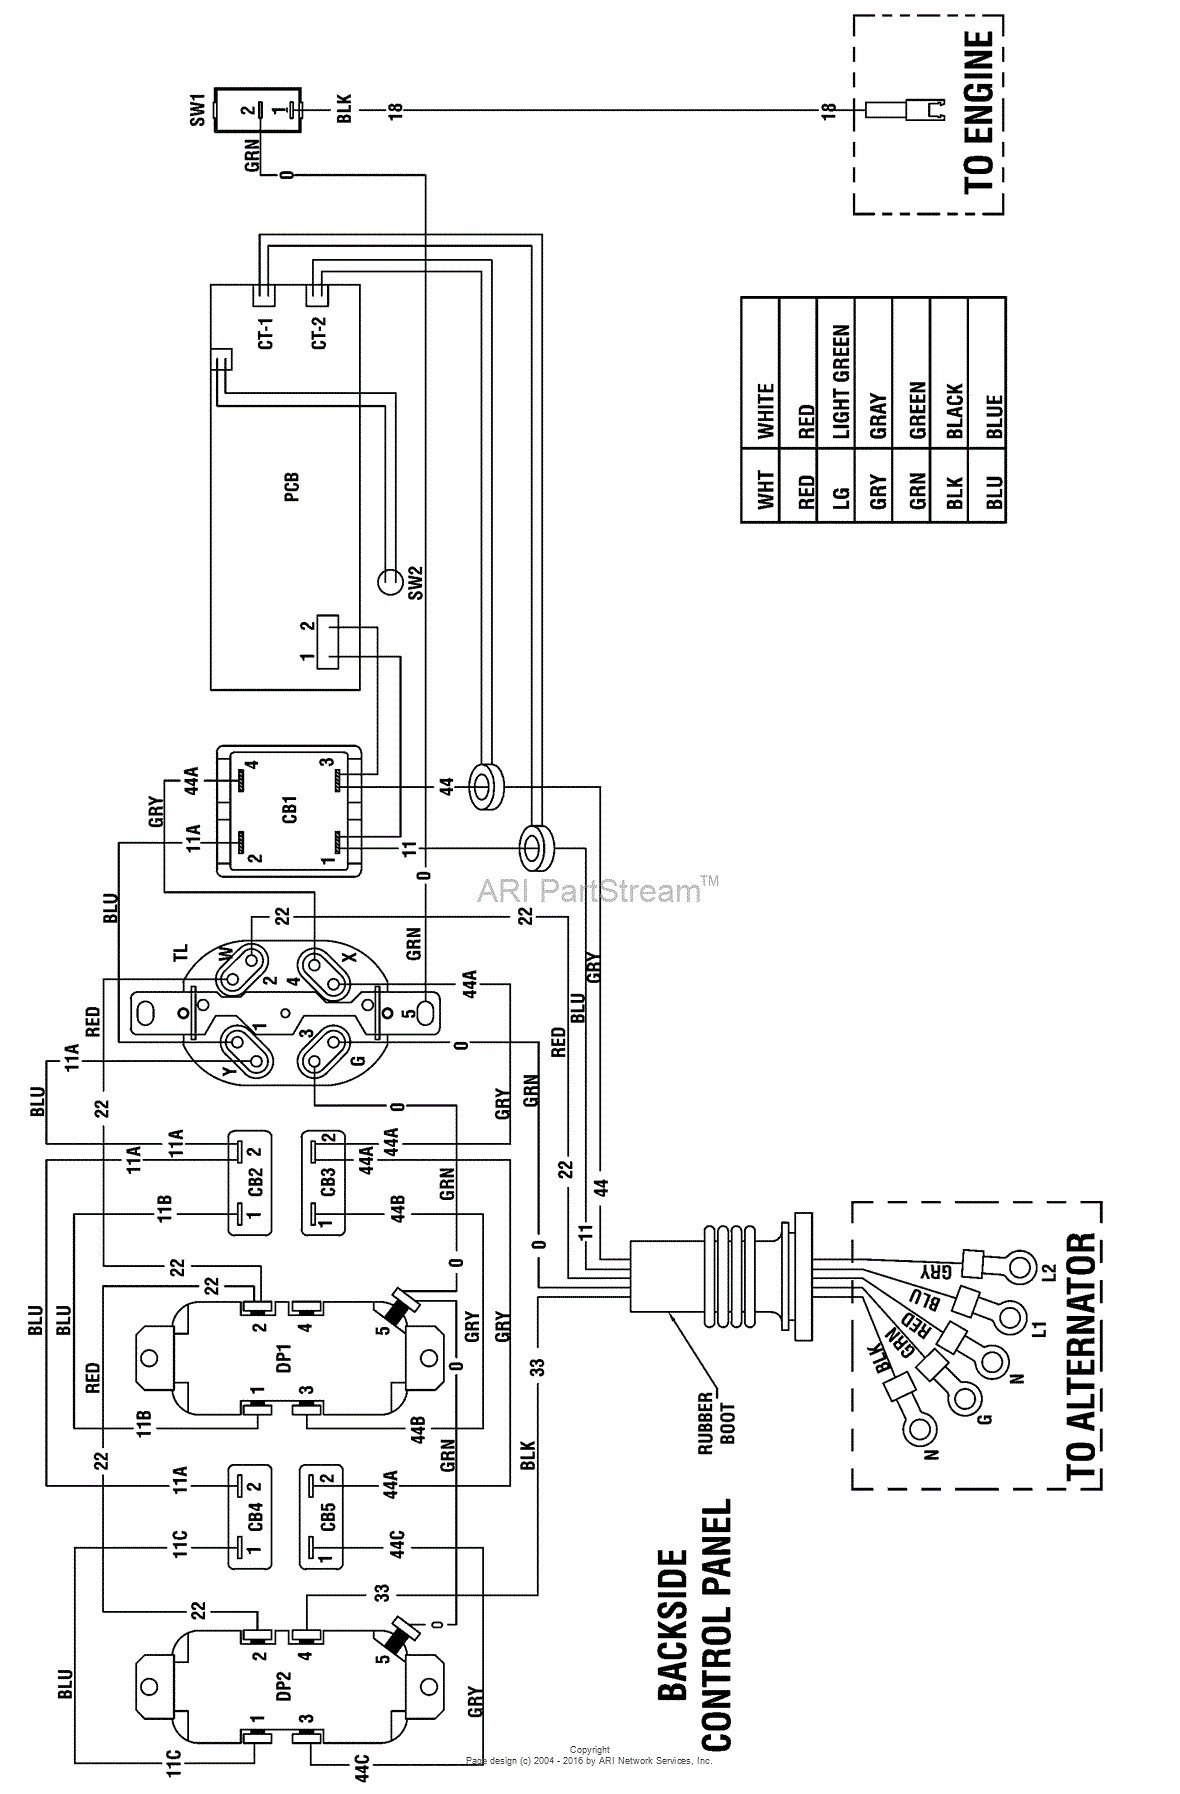 Briggs And Stratton Wiring Diagram Briggs And Stratton Wiring